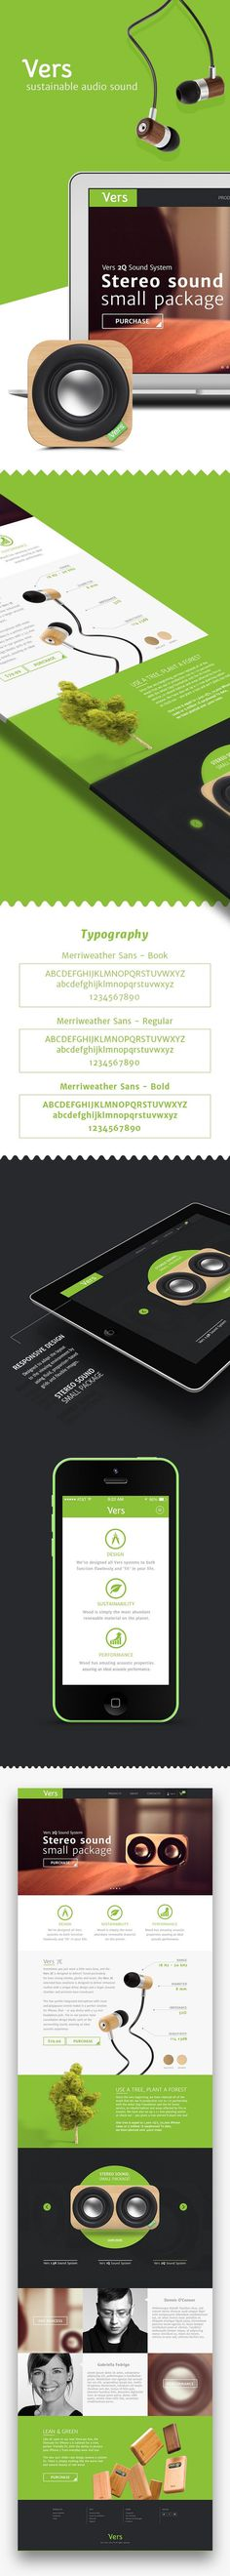 Vers Audio Website #design #web #ux #ui